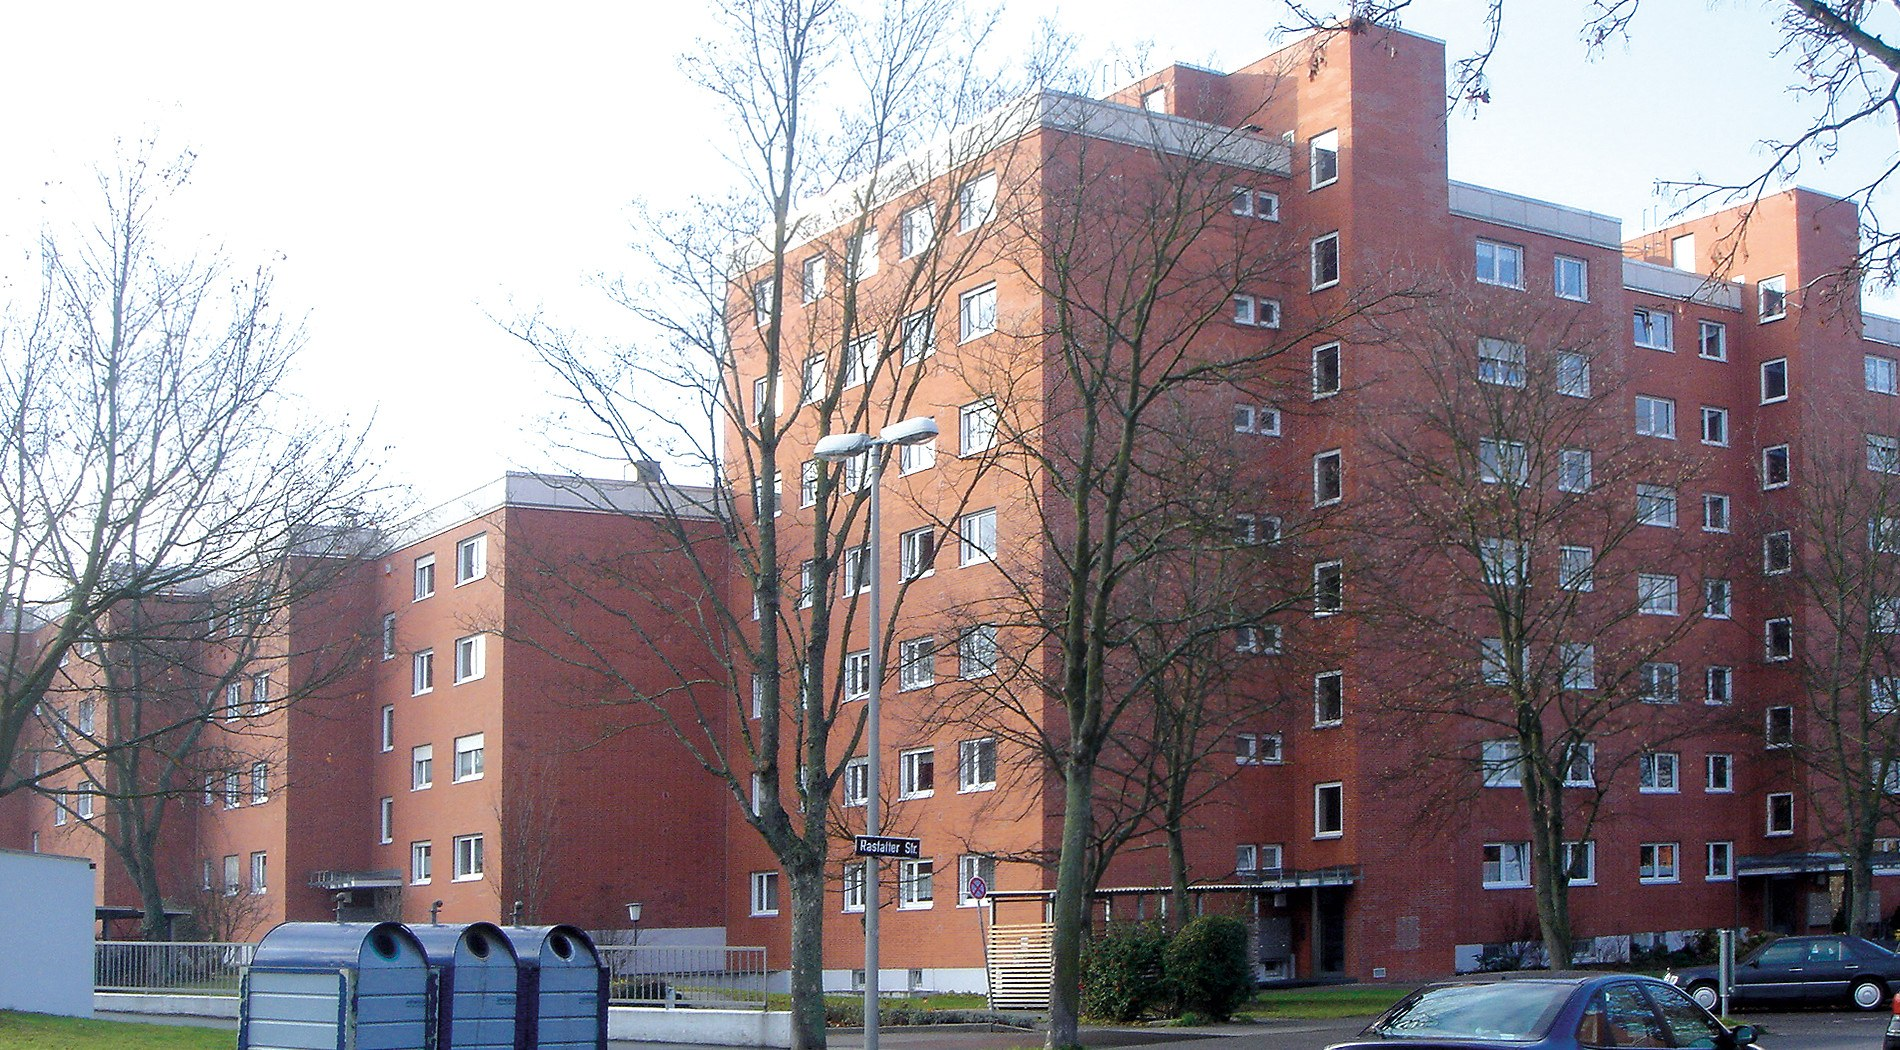 Project: Residential complex in Weilimdorf